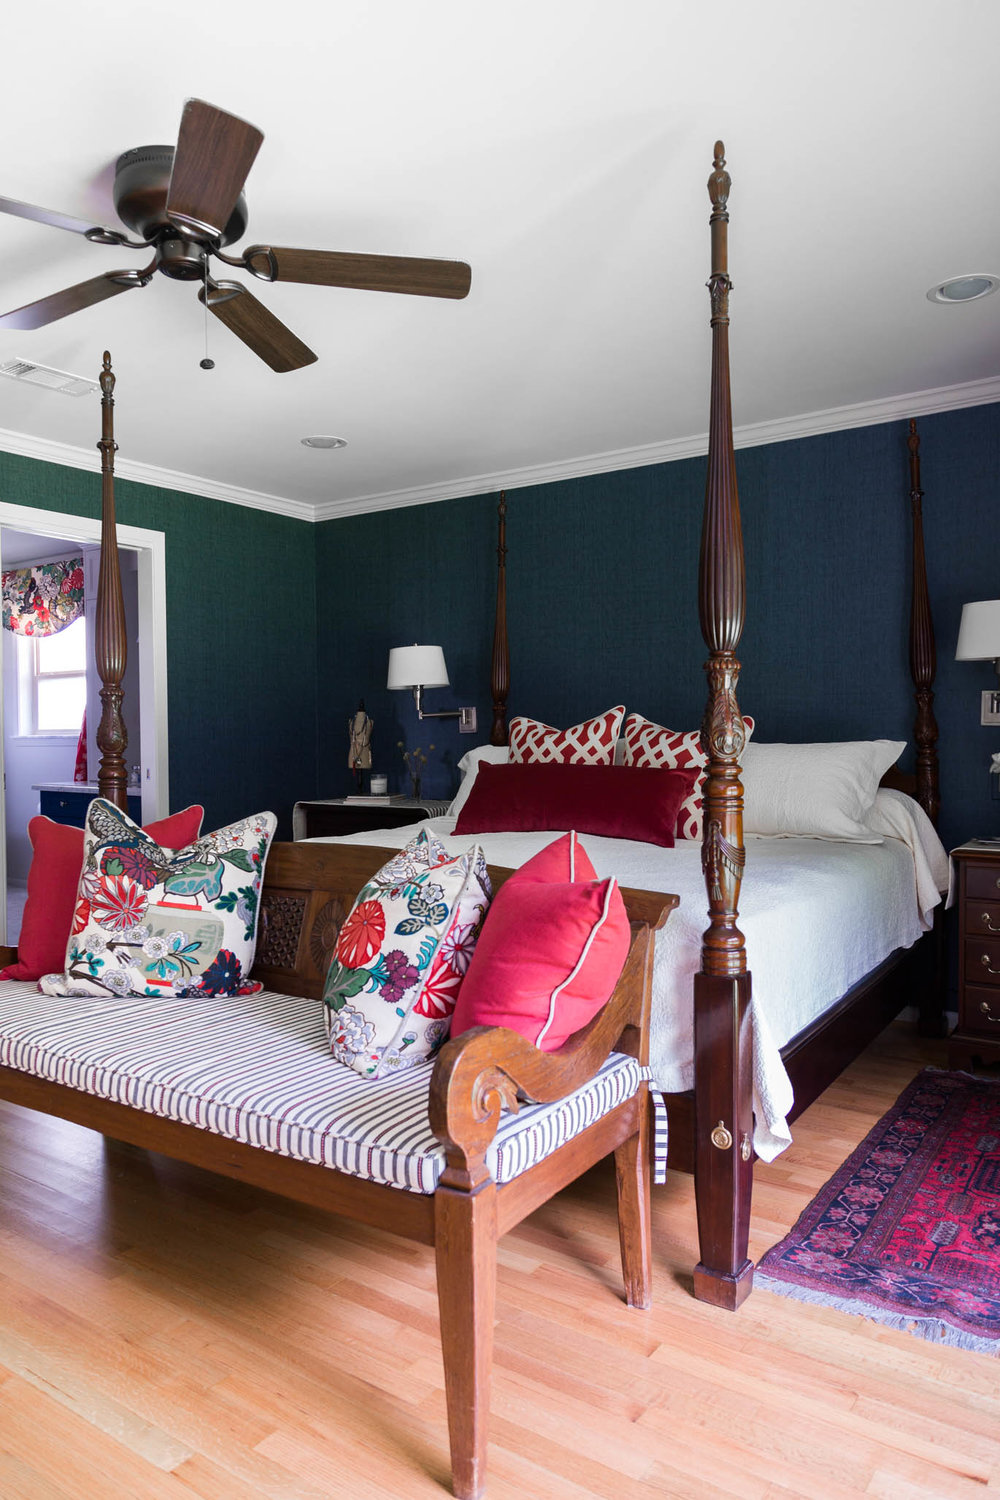 Bedroom makeover with navy grasscloth and colorful pillows with Chiang Mai Dragon fabric | Designer- Carla Aston, Photographer- Tori Aston #grasscloth #fourposterbed